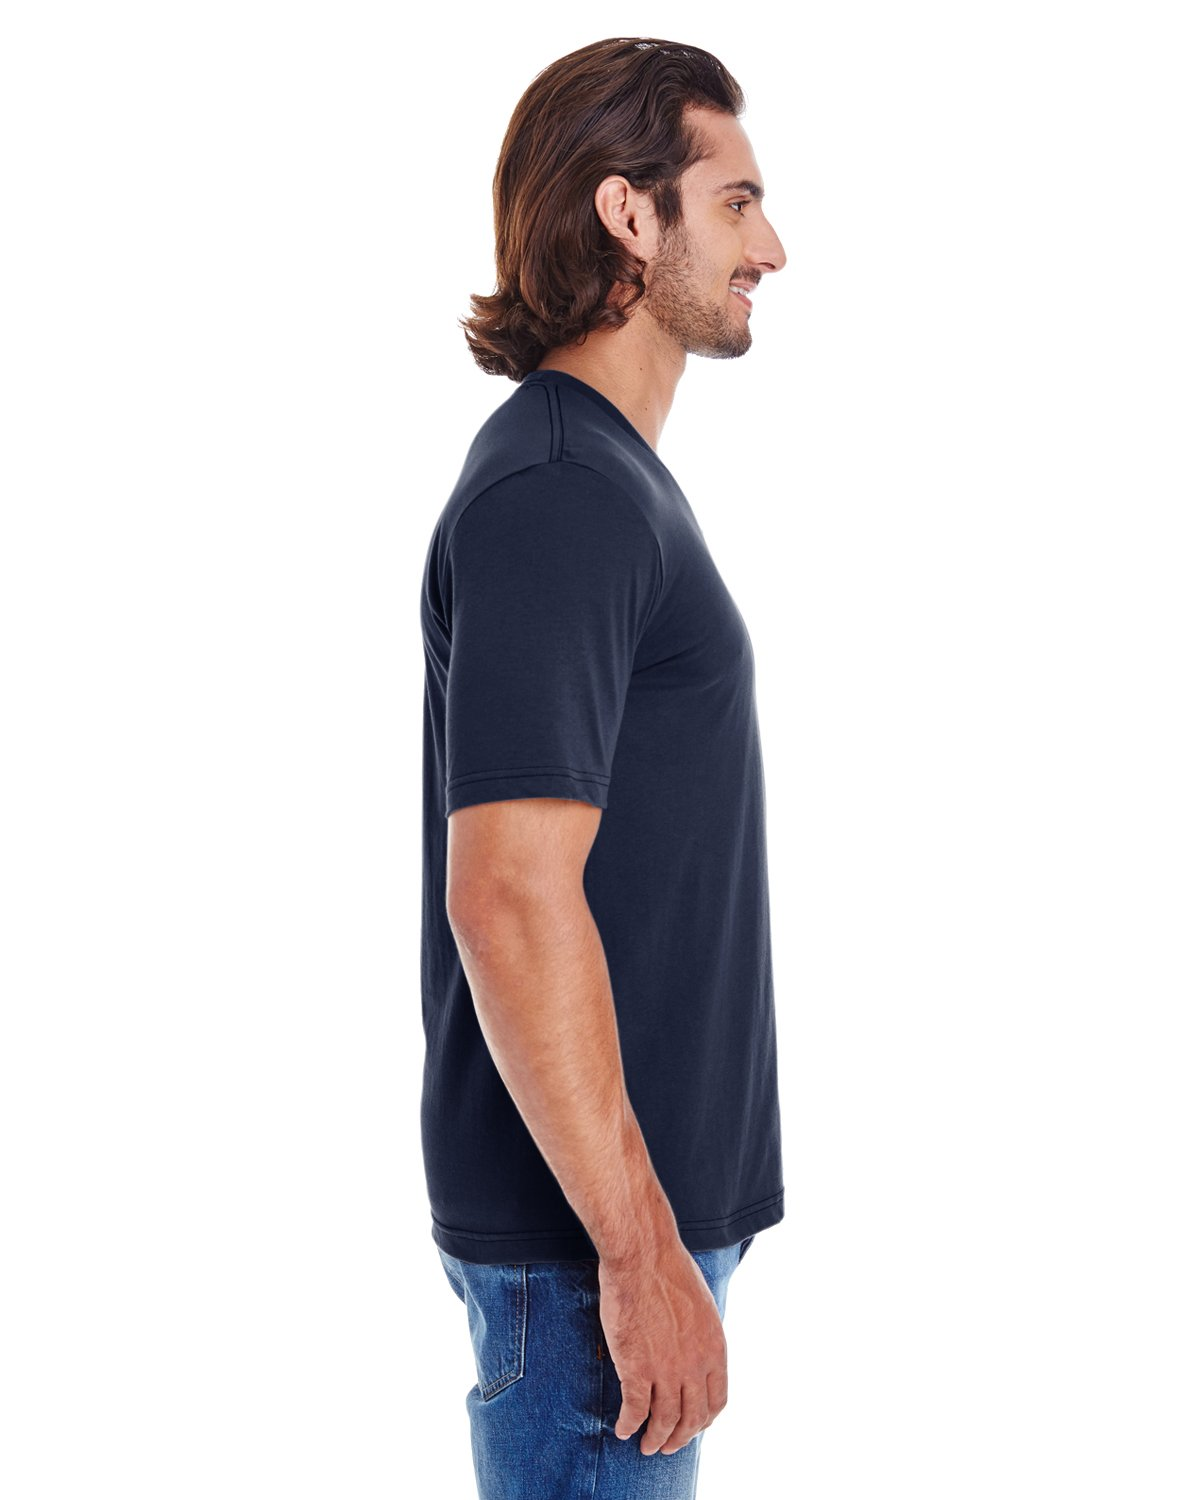 American Apparel 24321W Unisex Fine Jersey Short Sleeve Classic V-Neck Navy S by American Apparel (Image #2)